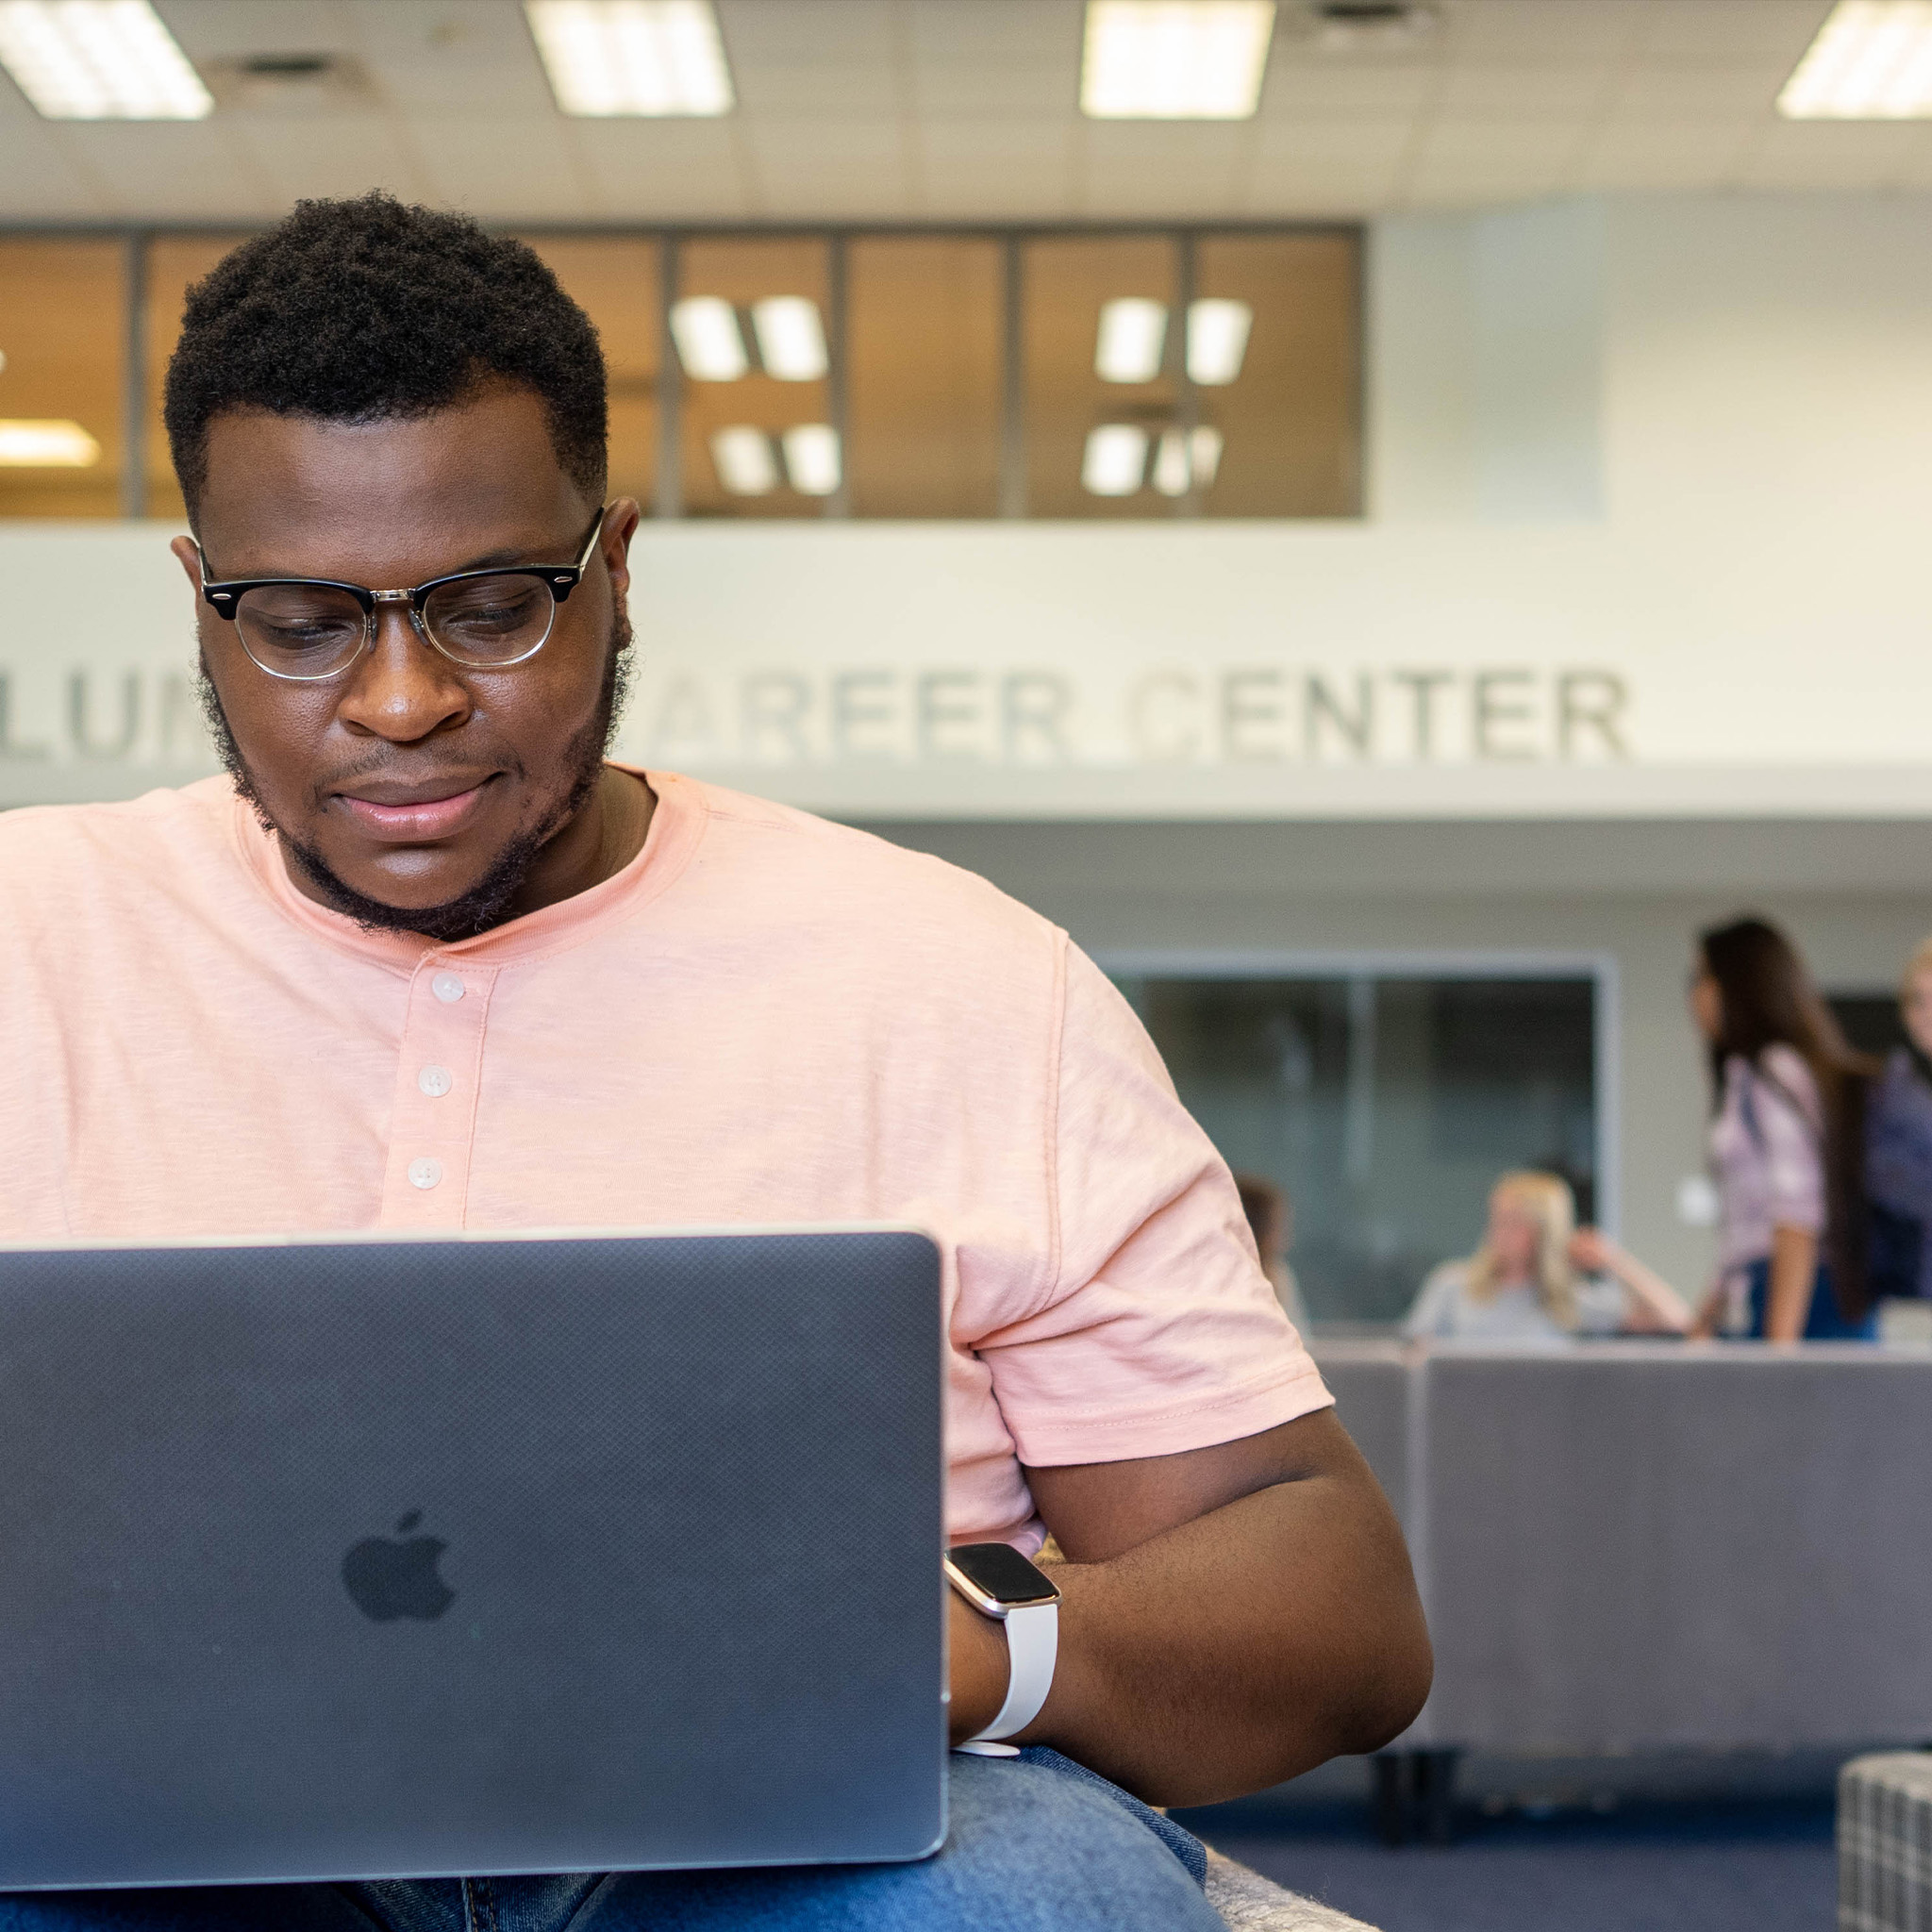 student working on computer in learning center